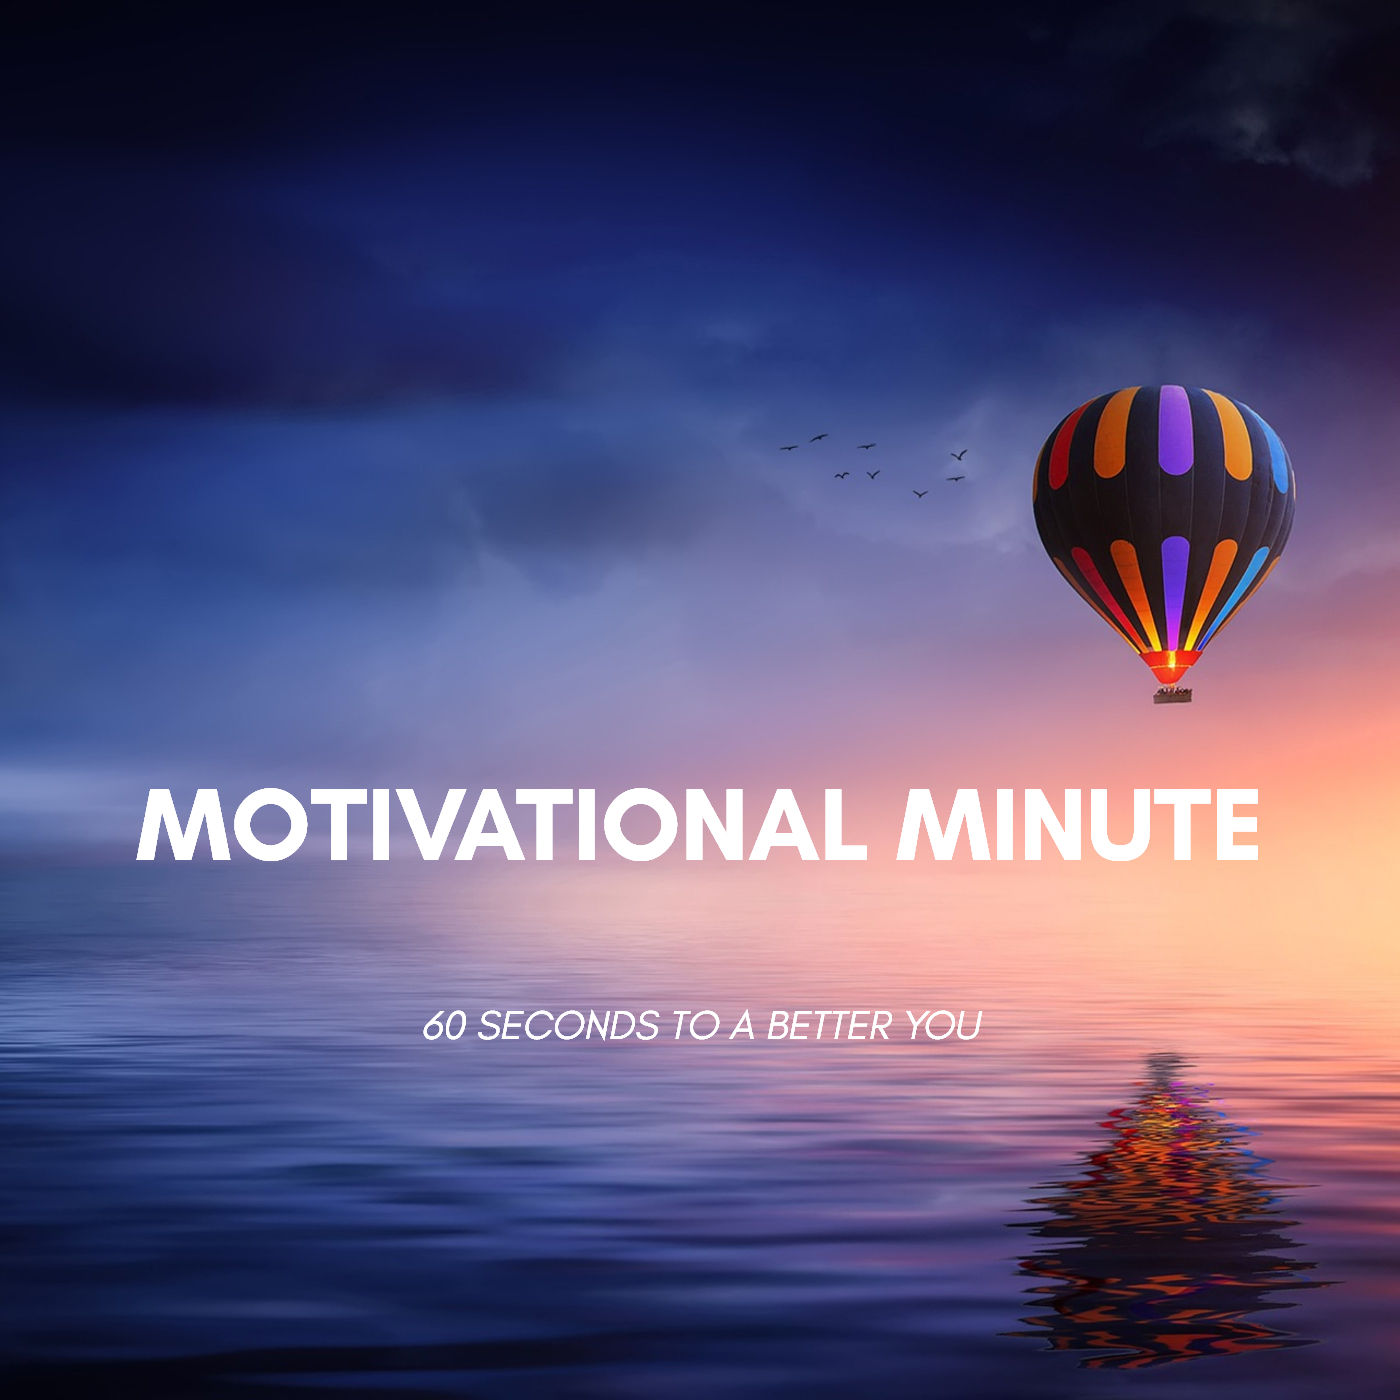 Motivational Minute| 60 sec to a better you!|Allie Theiss